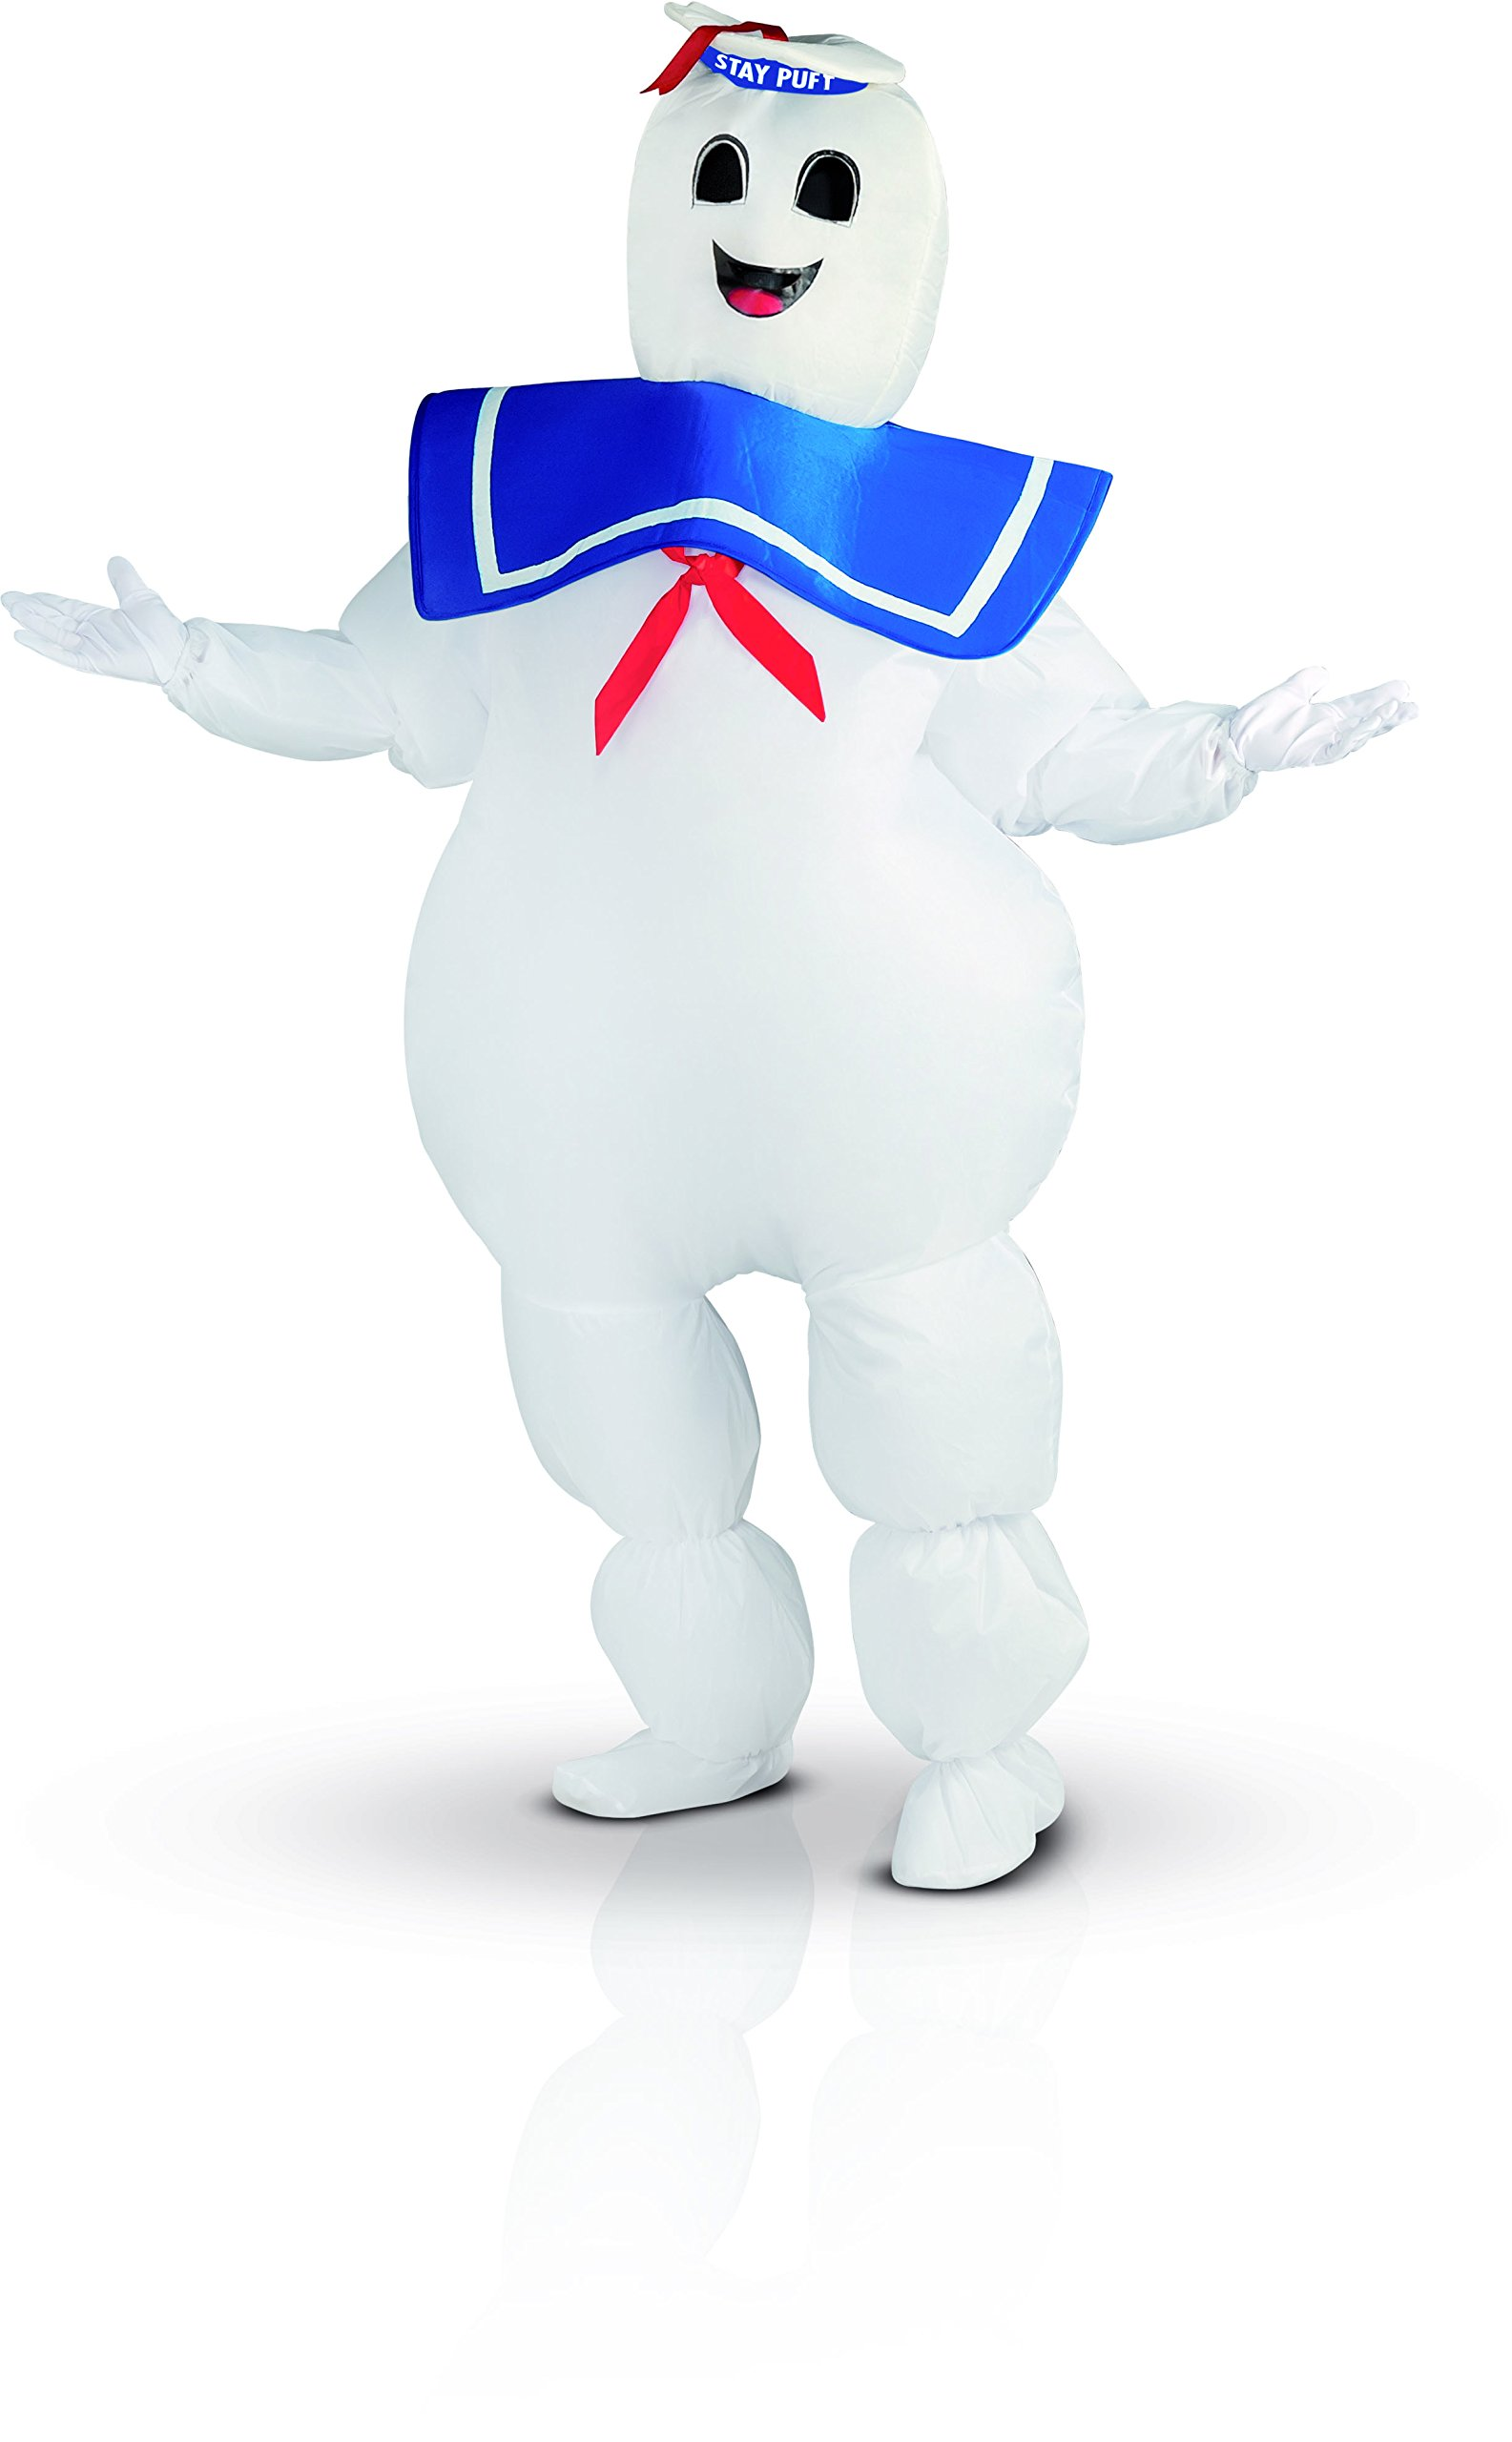 Rubie's Costume Co Ghostbusters Inflatable Stay Puft Marshmallow Man Costume, White, Standard